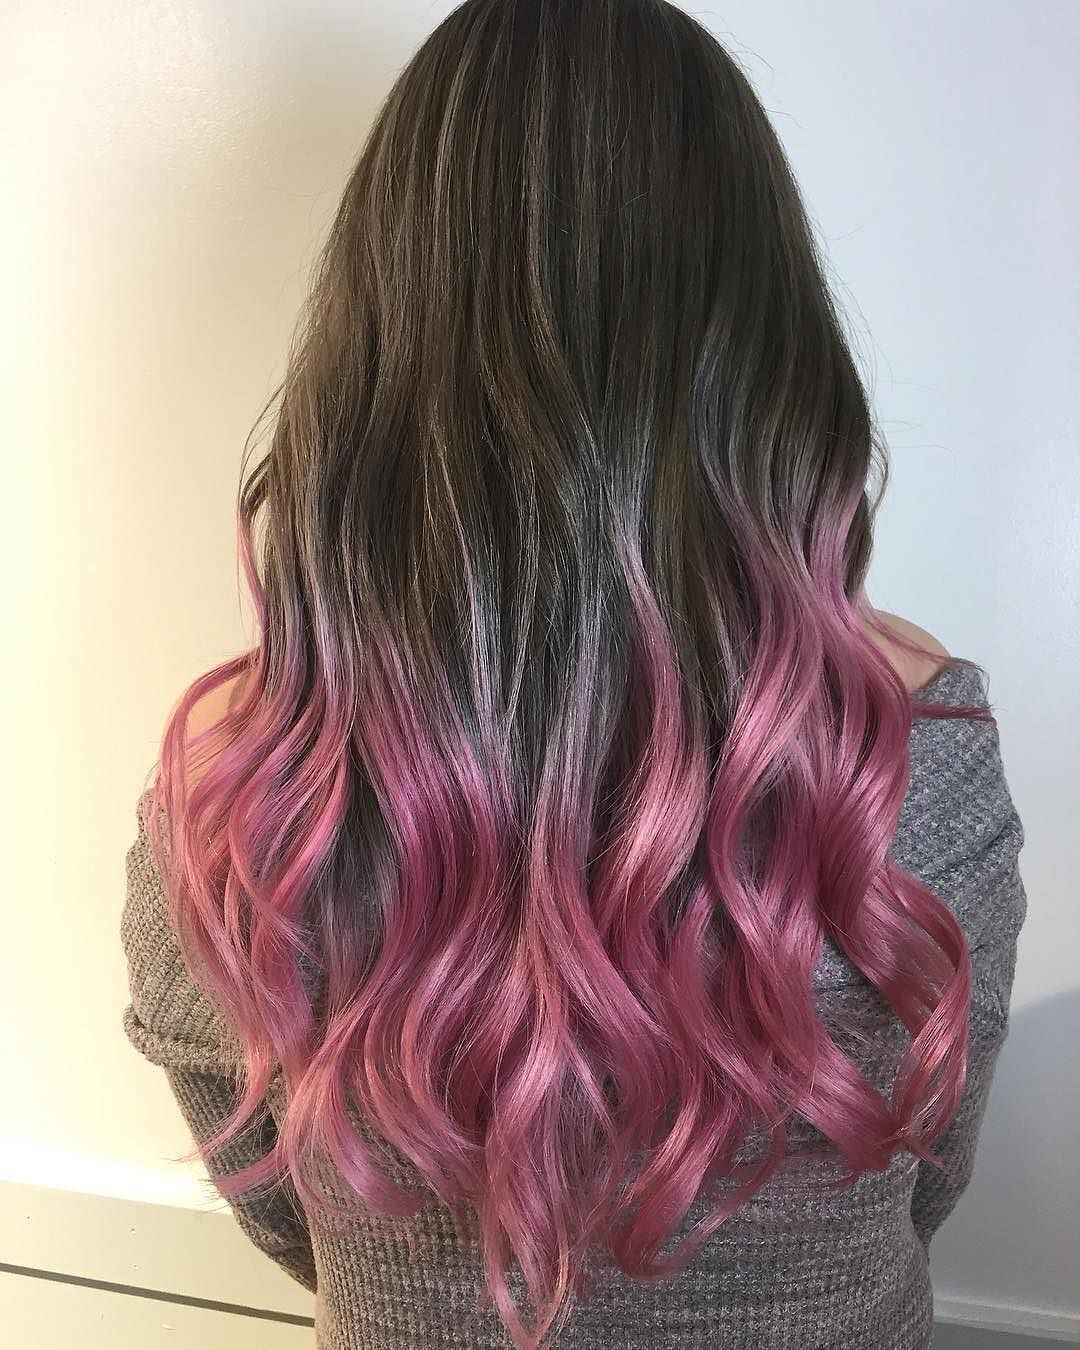 If You Can T Decide Between Pink And Brown The Answer Is Both Moses Haiier Used Overtone Vibrant Pink On Pink Purple Hair Pastel Pink Hair Ombre Pink Hair